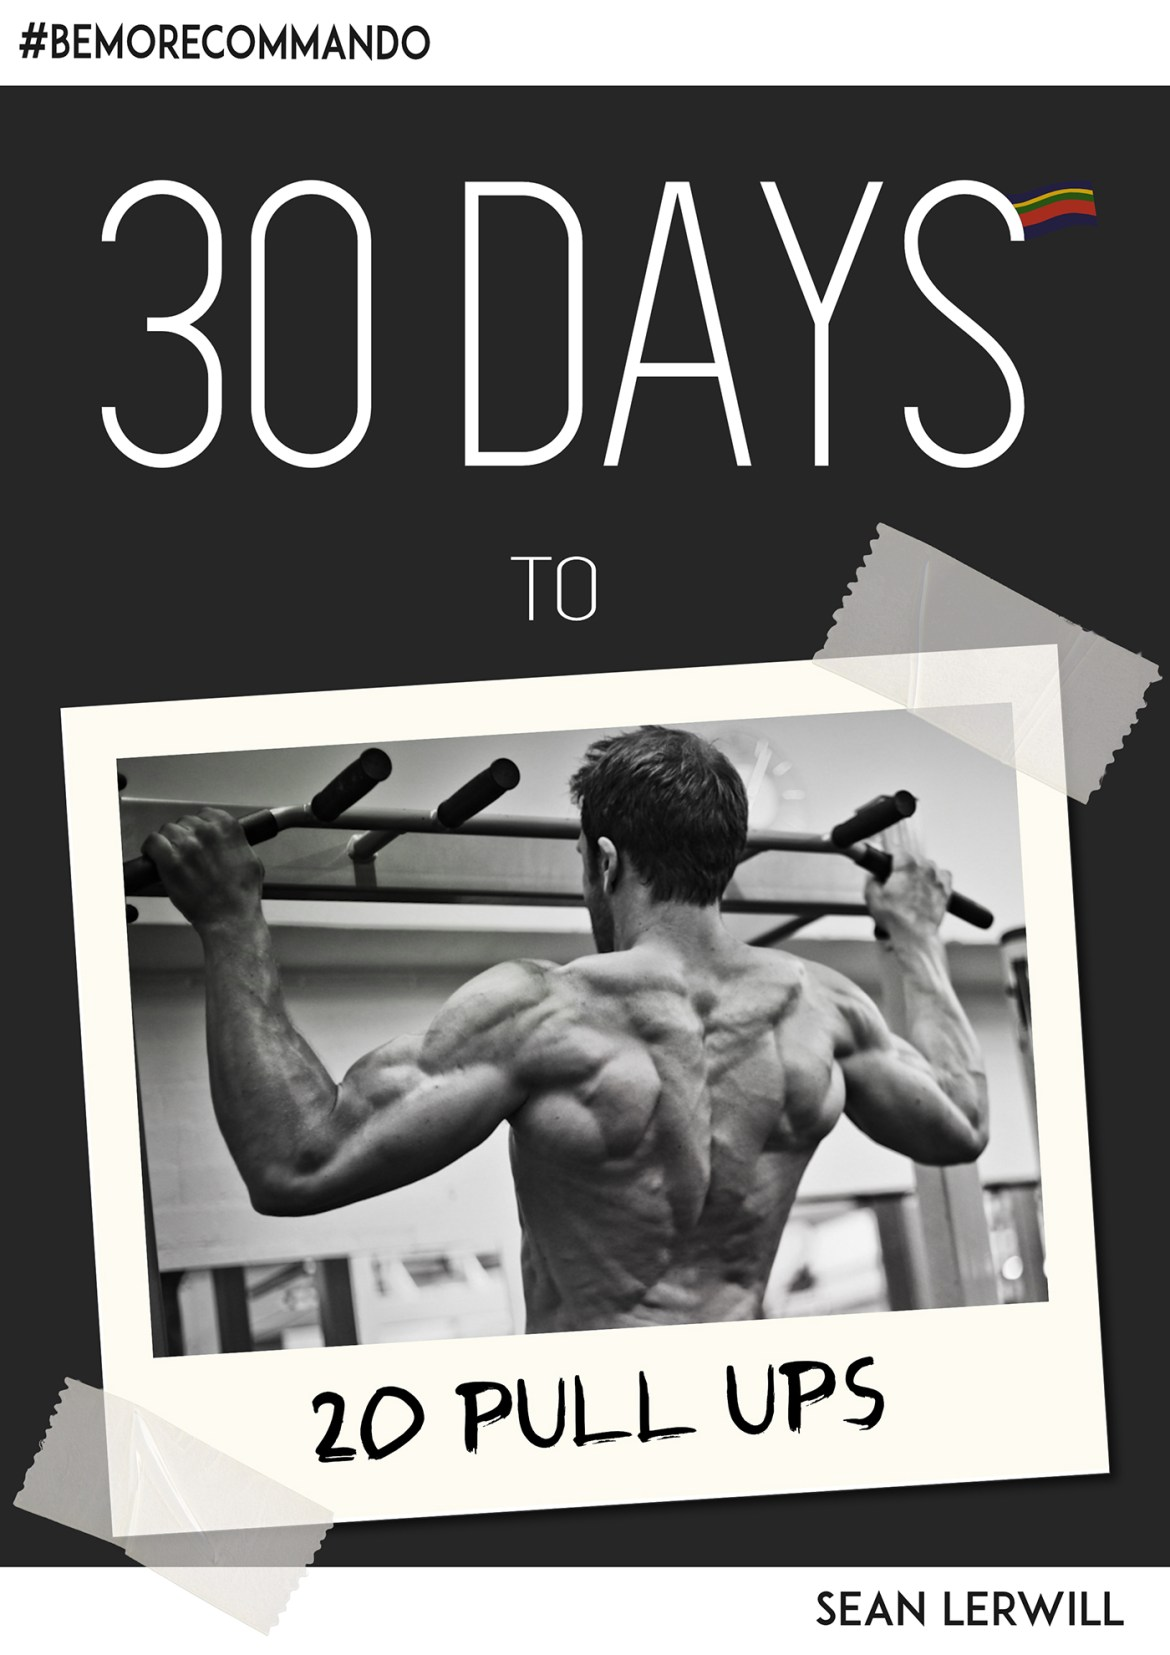 30 Days to 20 Pull-ups